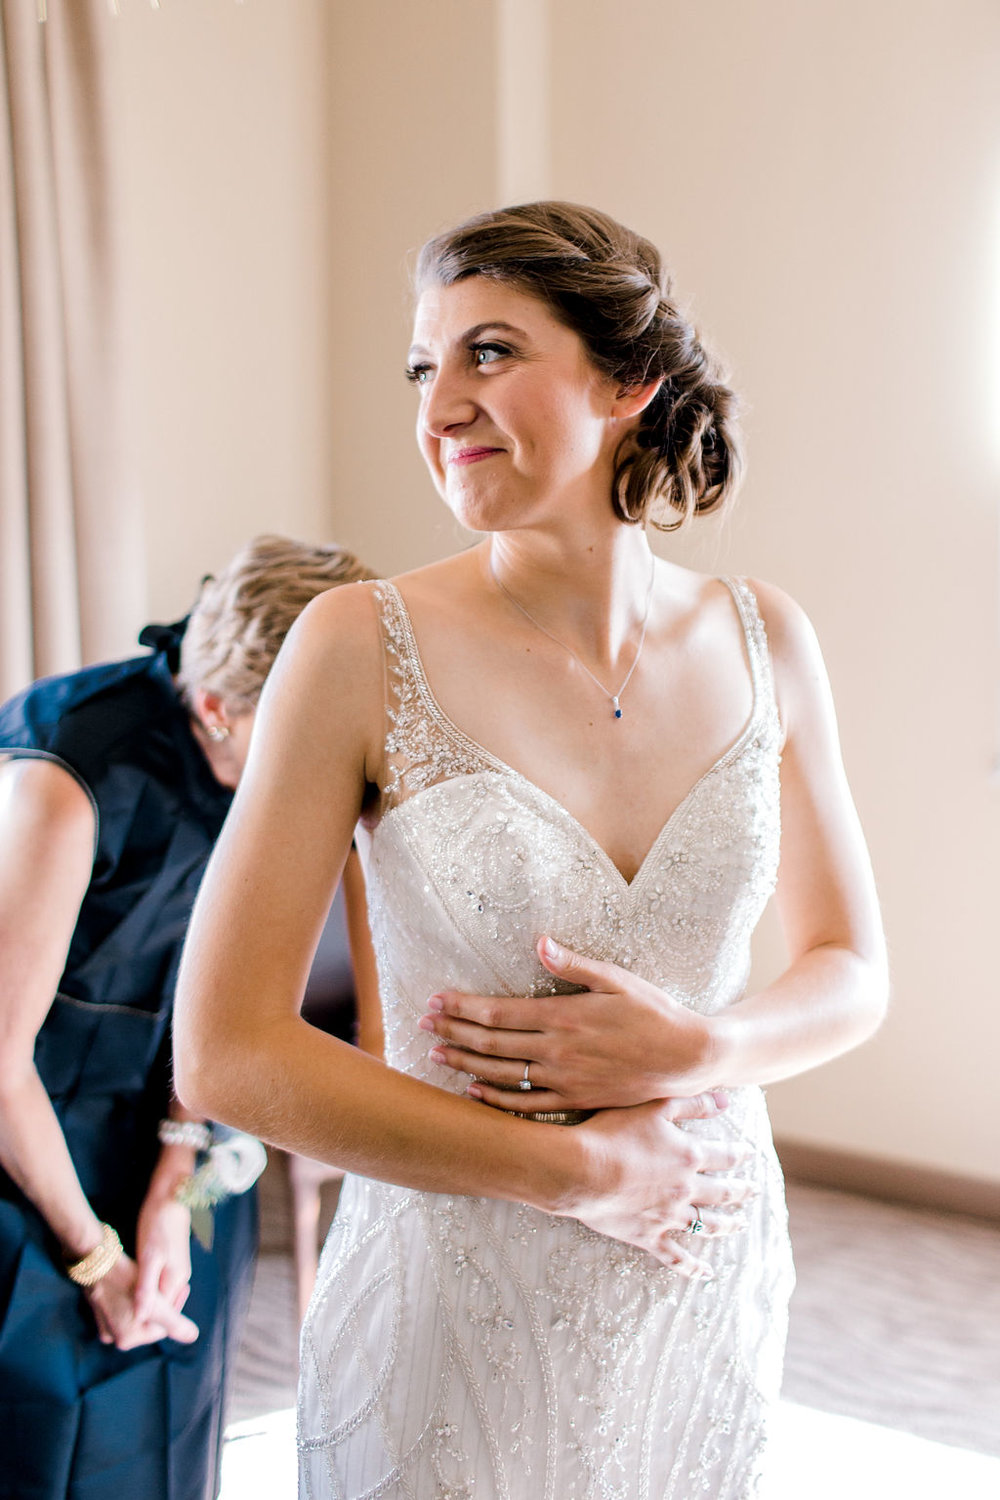 peppers-wedding-10.20.18-201.jpg